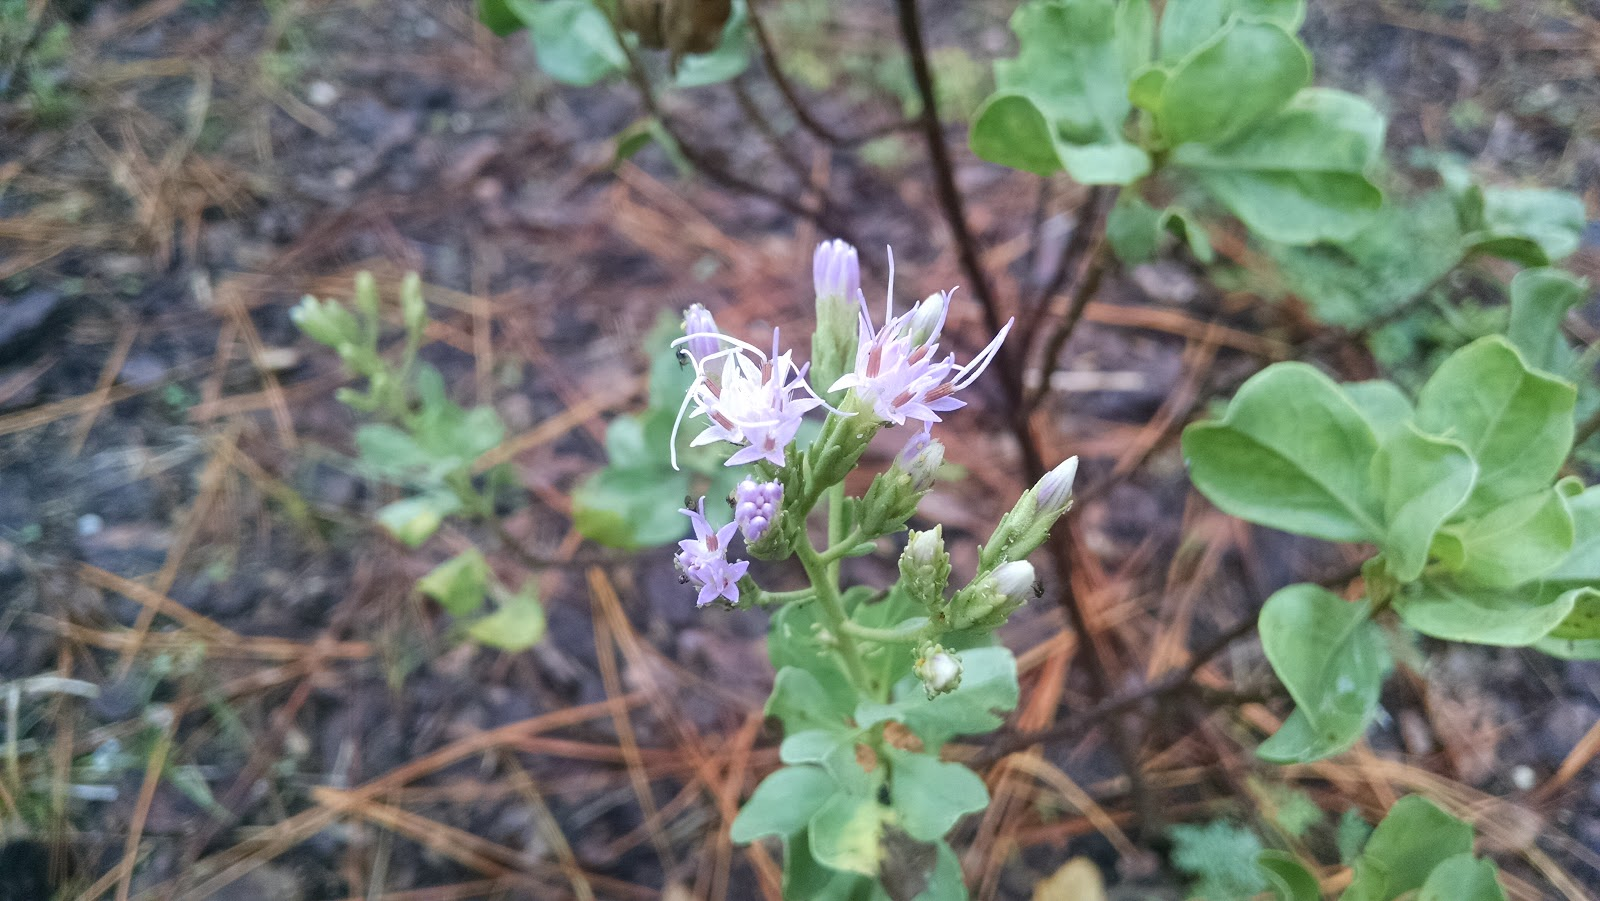 In The Fall, Garberia Blooms With Pale Purple Frilly Blossoms That Are A  Great Attractant To Butterflies. When I Fist Encountered This Plant Growing  In The ...